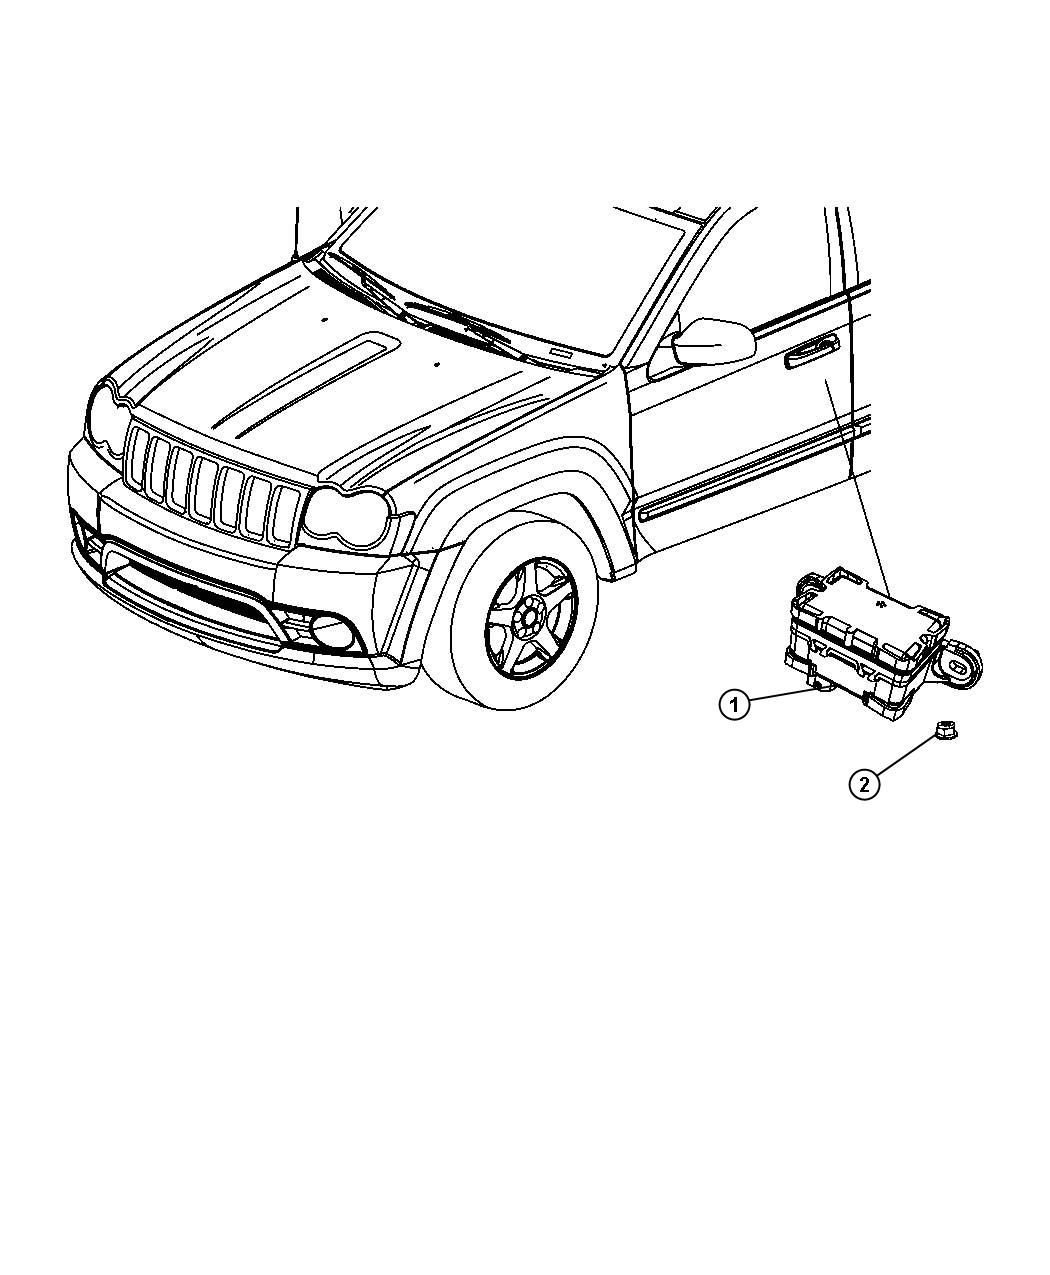 Jeep Commander Sensor Dynamics Used For Lateral